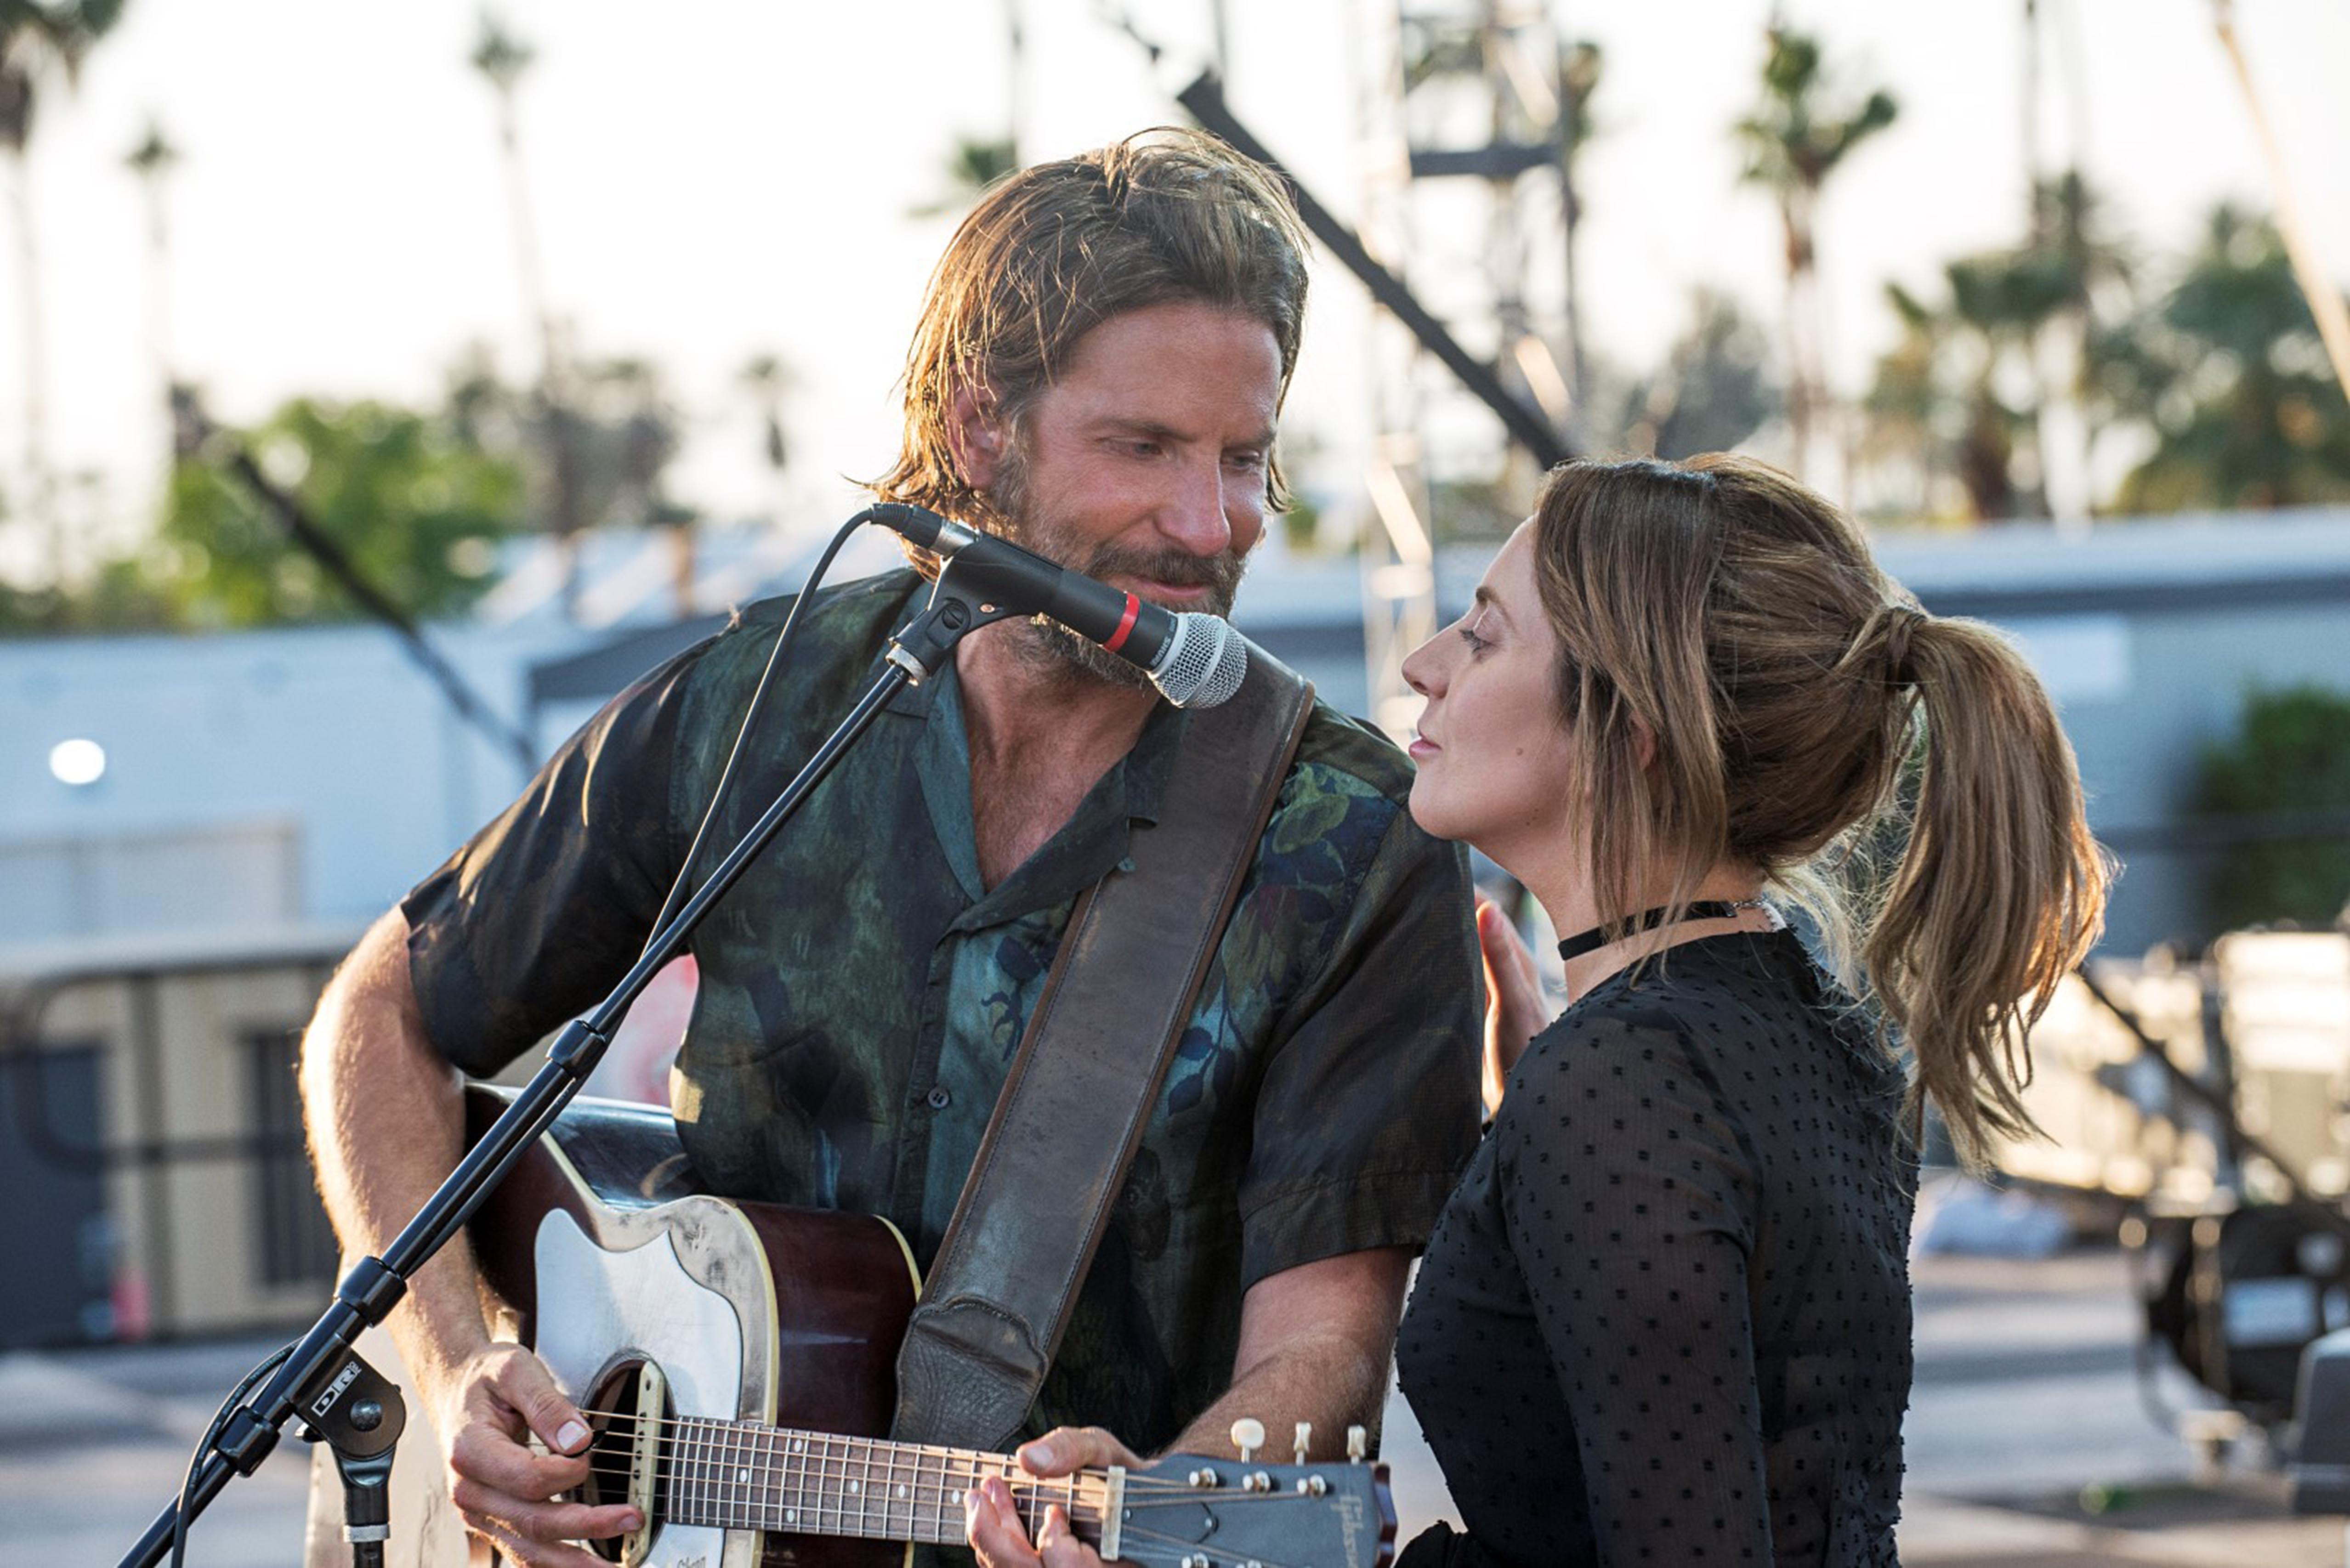 The story behind Lady Gaga's emotional final performance in A Star Is Born is heartbreaking